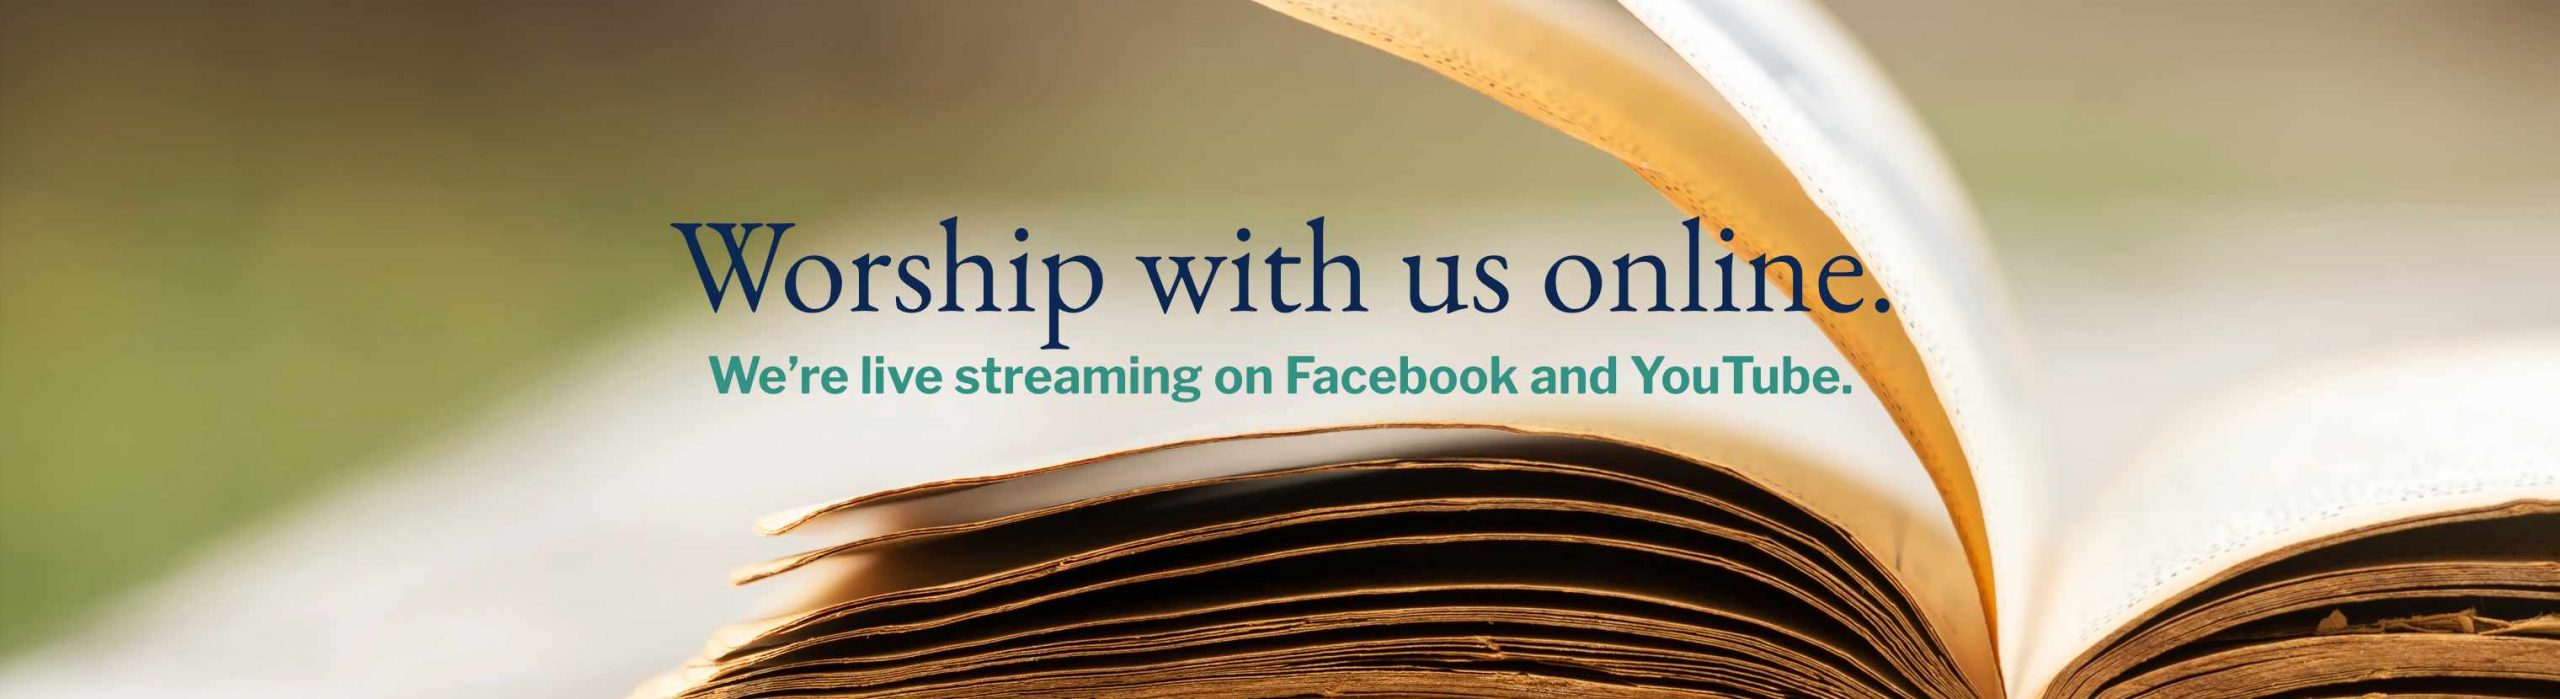 Worship with us online on Facebook or YouTube.